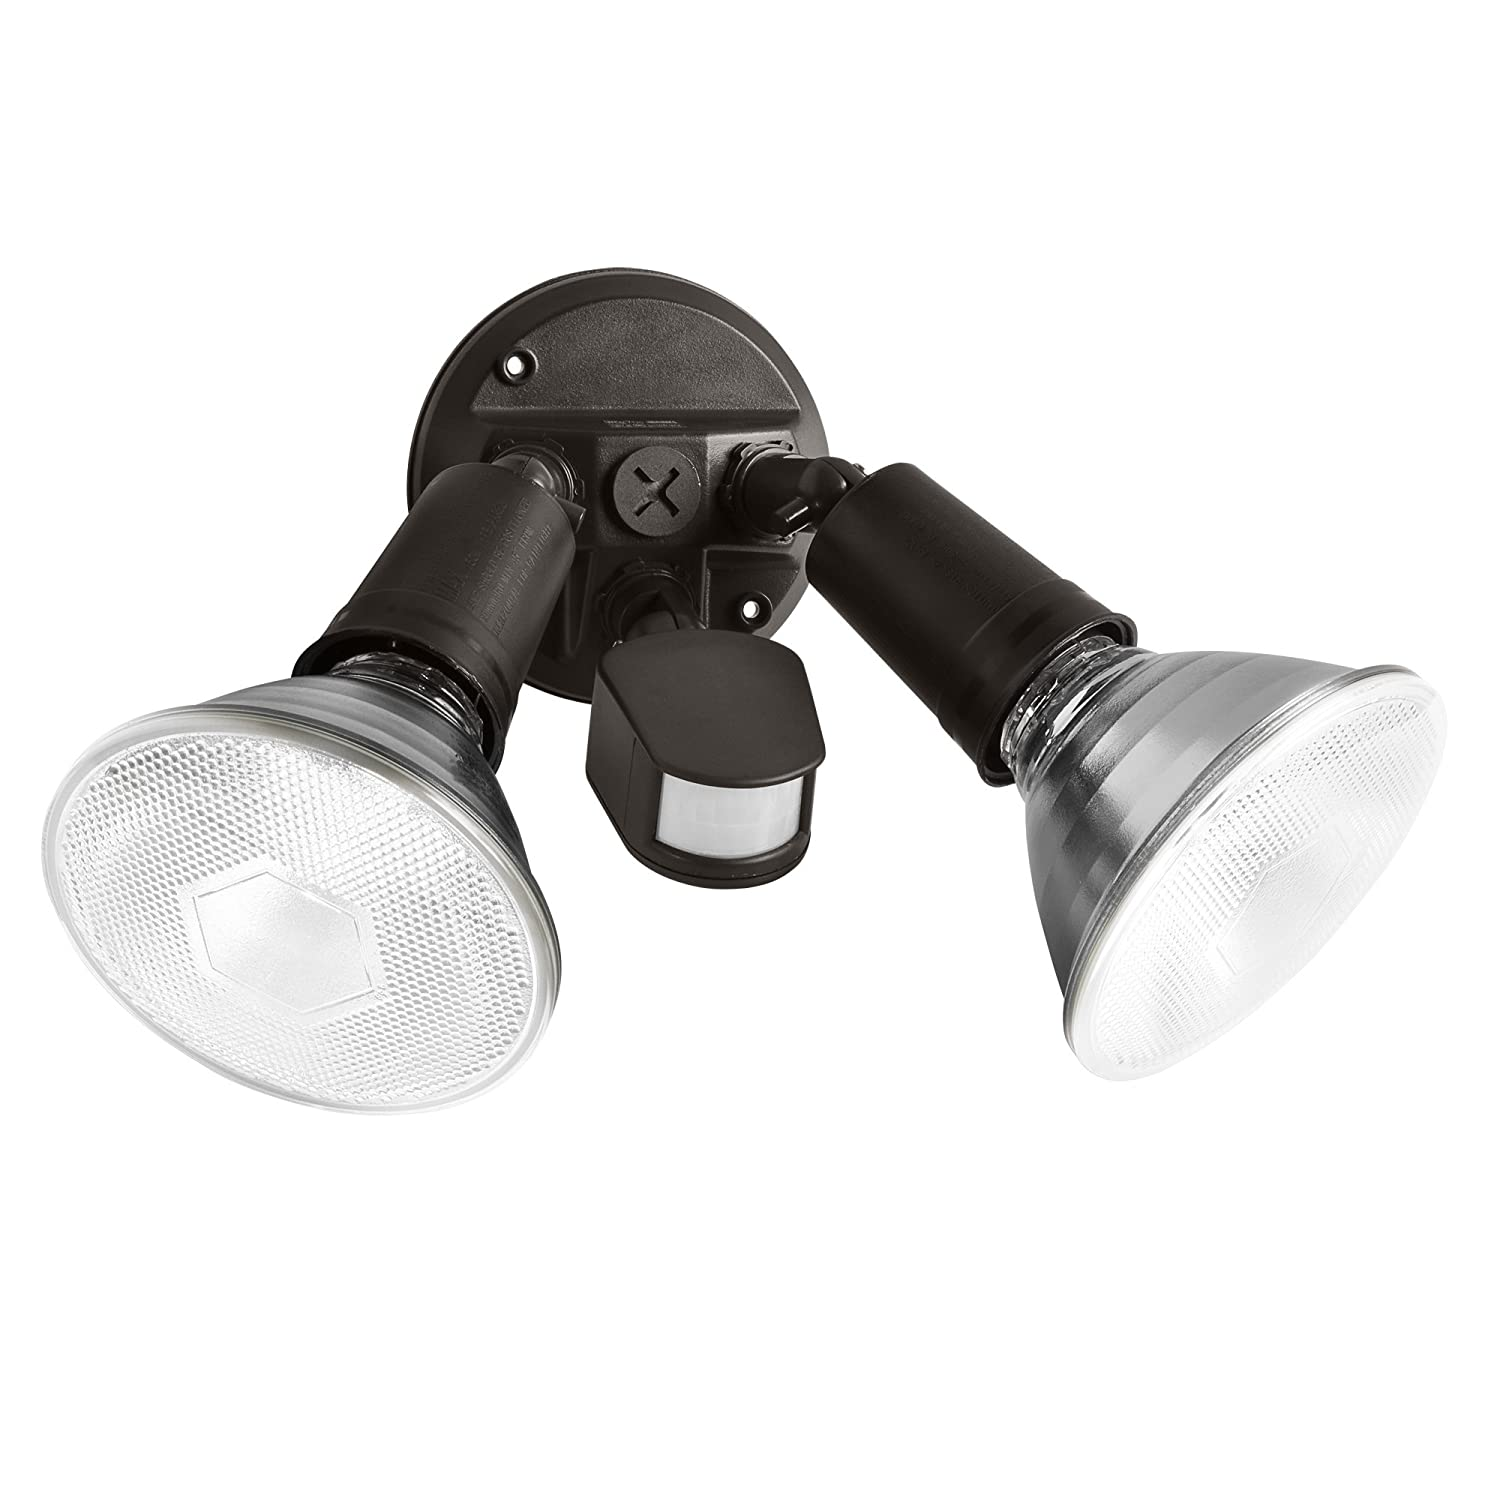 Motion Sensing Outdoor Security Lights: NEW Brinks 110-Degree Motion Par Security Light Sensor